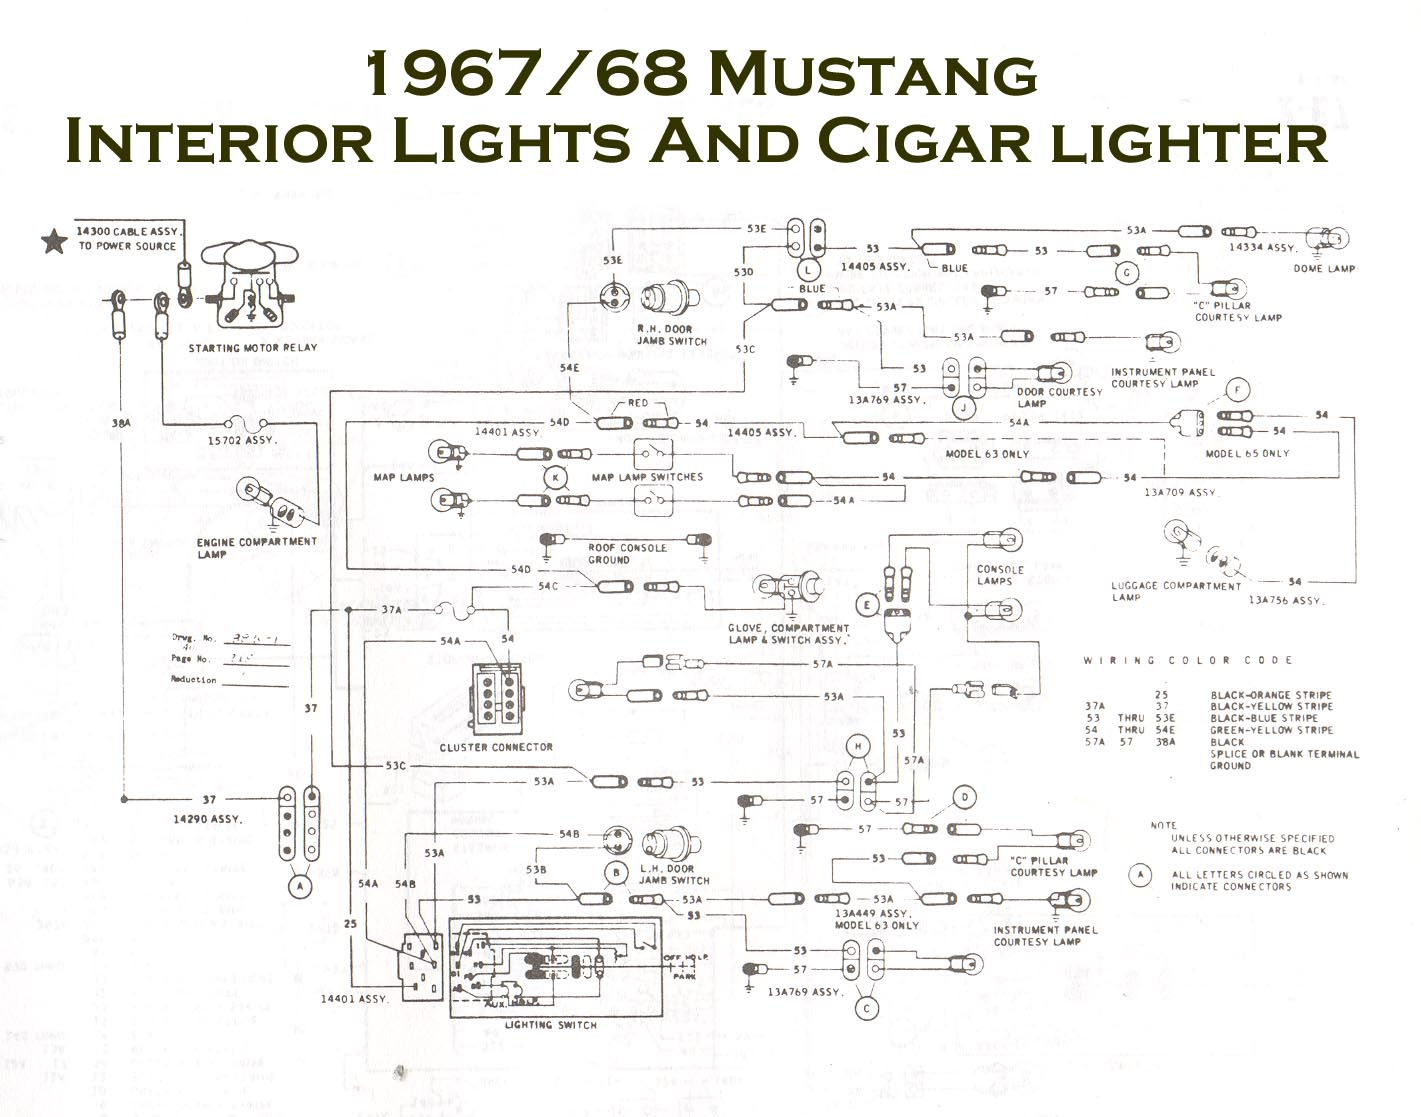 1967 68_console_wiring_diagram vintage mustang wiring diagrams 2004 volvo s40 radio wiring diagram at crackthecode.co